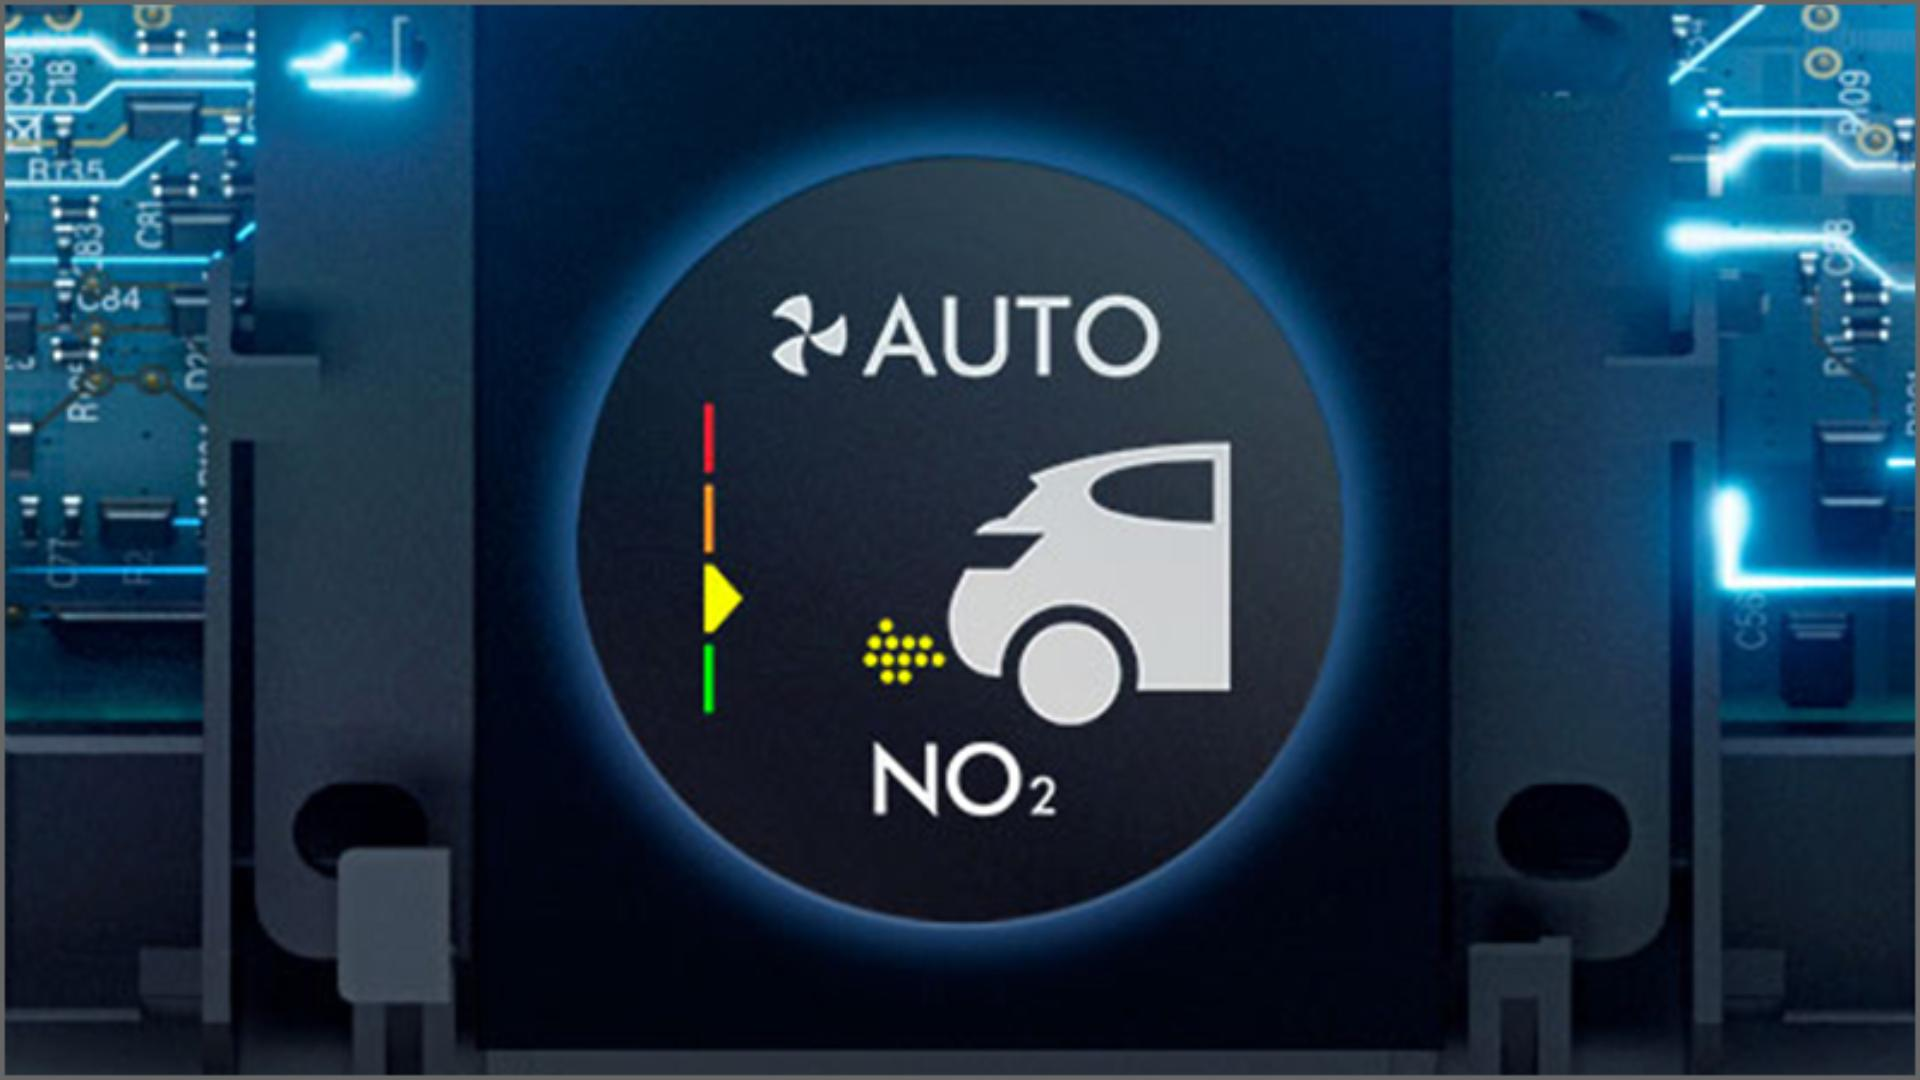 Internal sensing technology and LCD screen showing pollutants detected